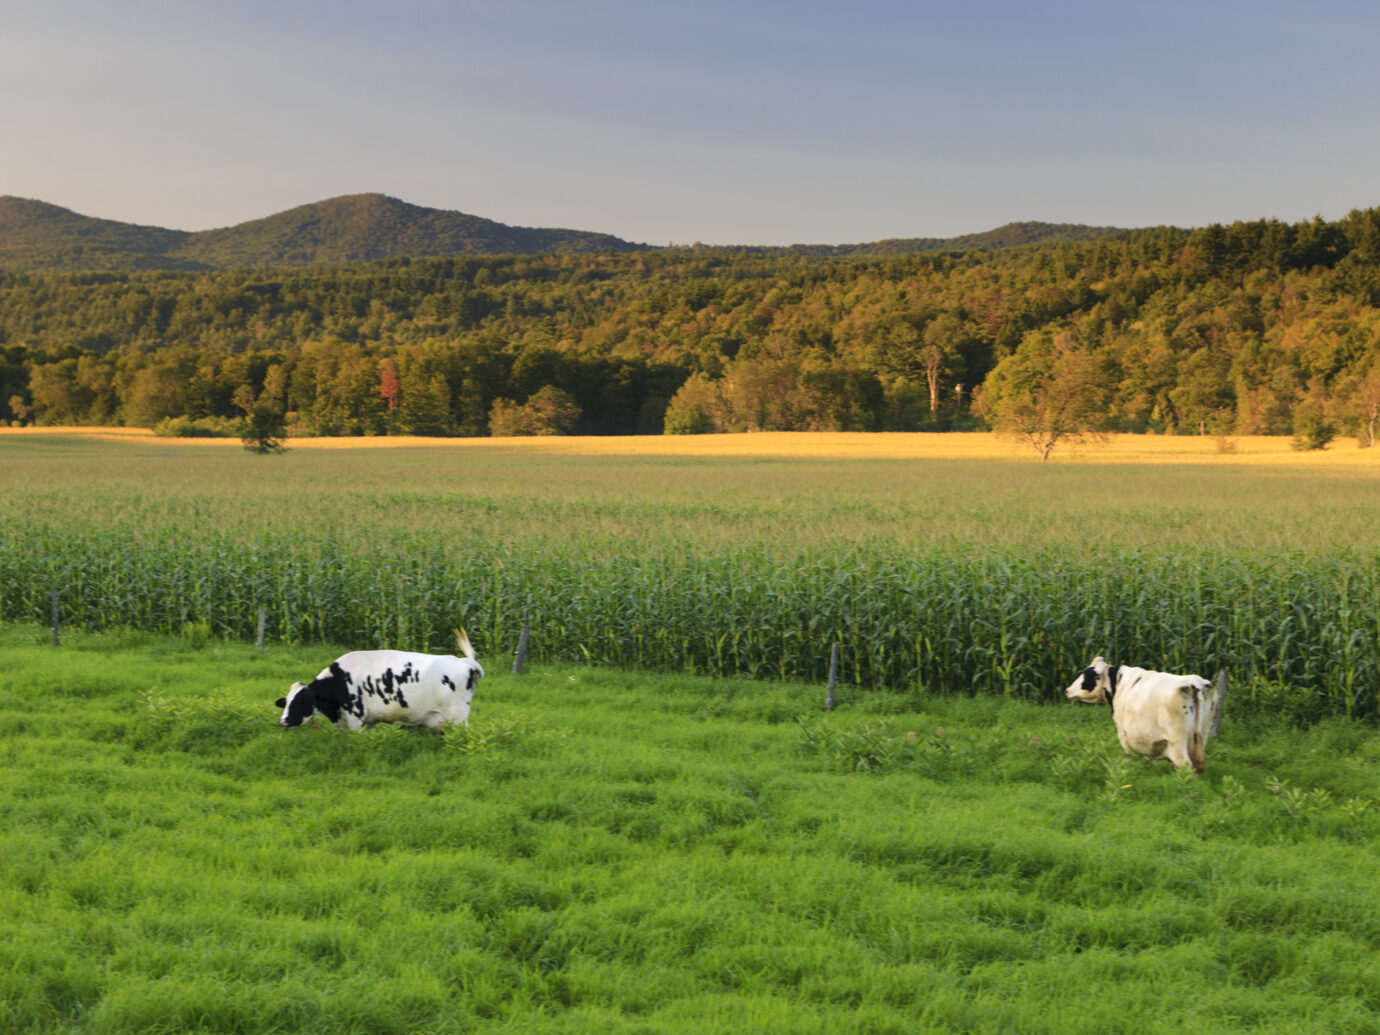 """Pair of cows in a green grass field with a large field of corn and mountains in the background in Stowe, Vermont, USA"""